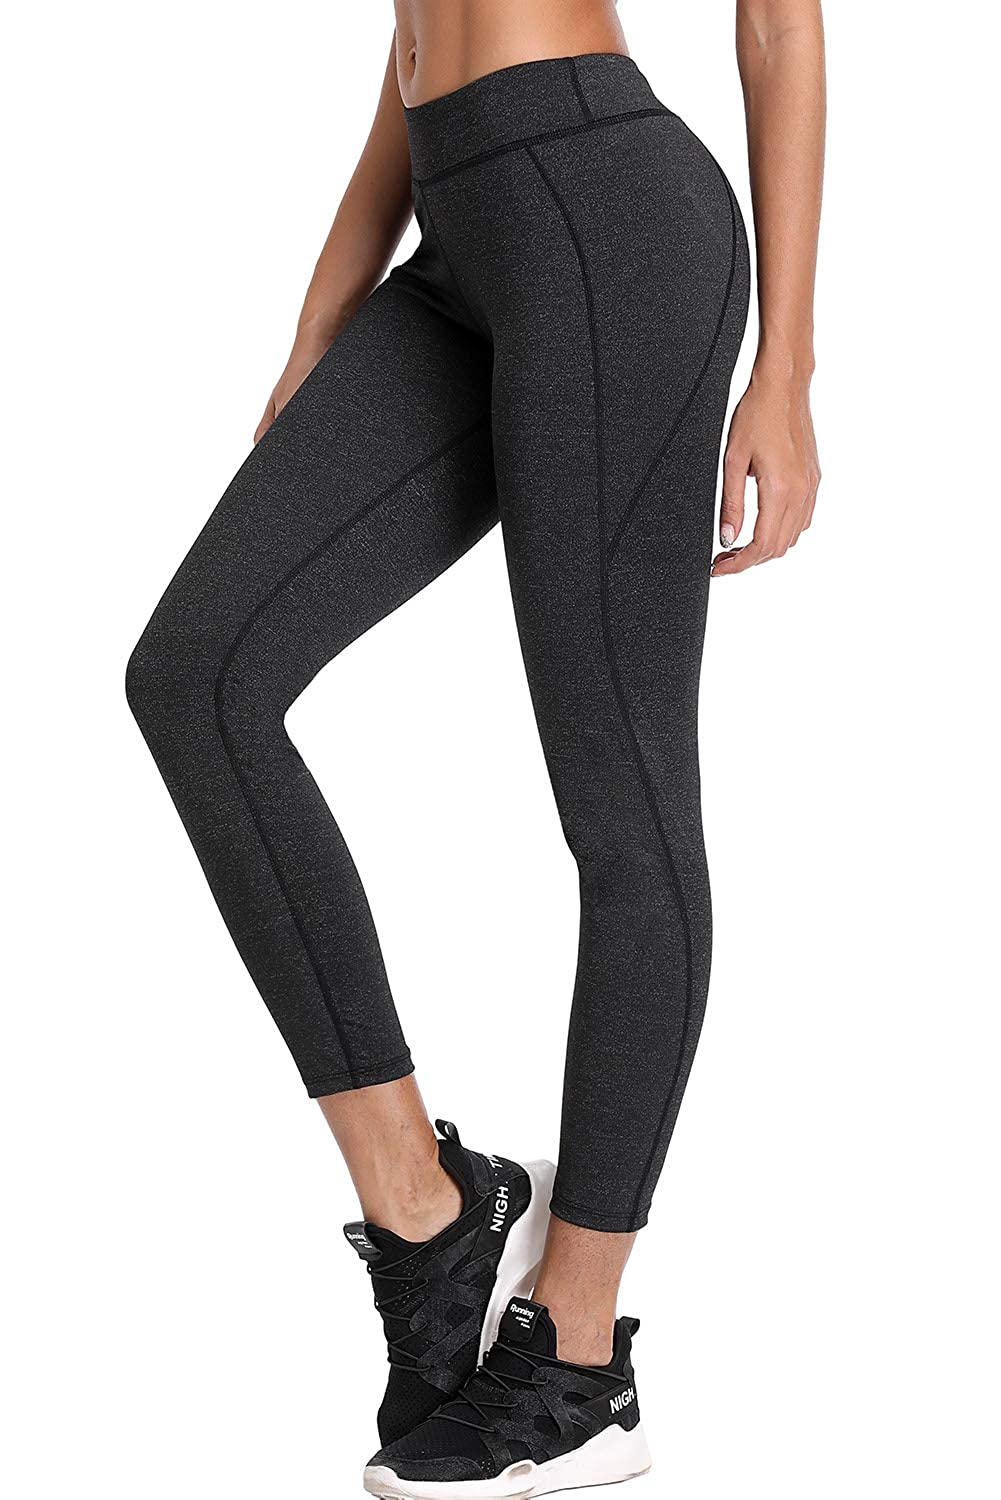 CharmLeaks Women's High Waist Yoga Pants Sport Leggings Workout Running Tights